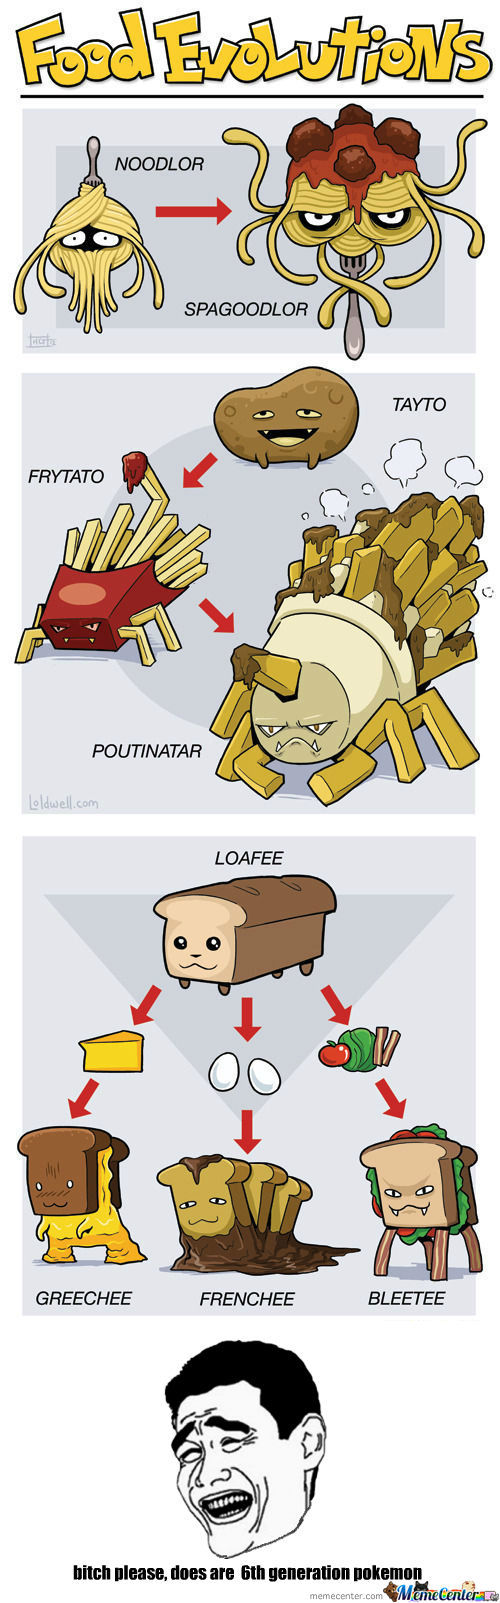 [RMX] Food Evolution